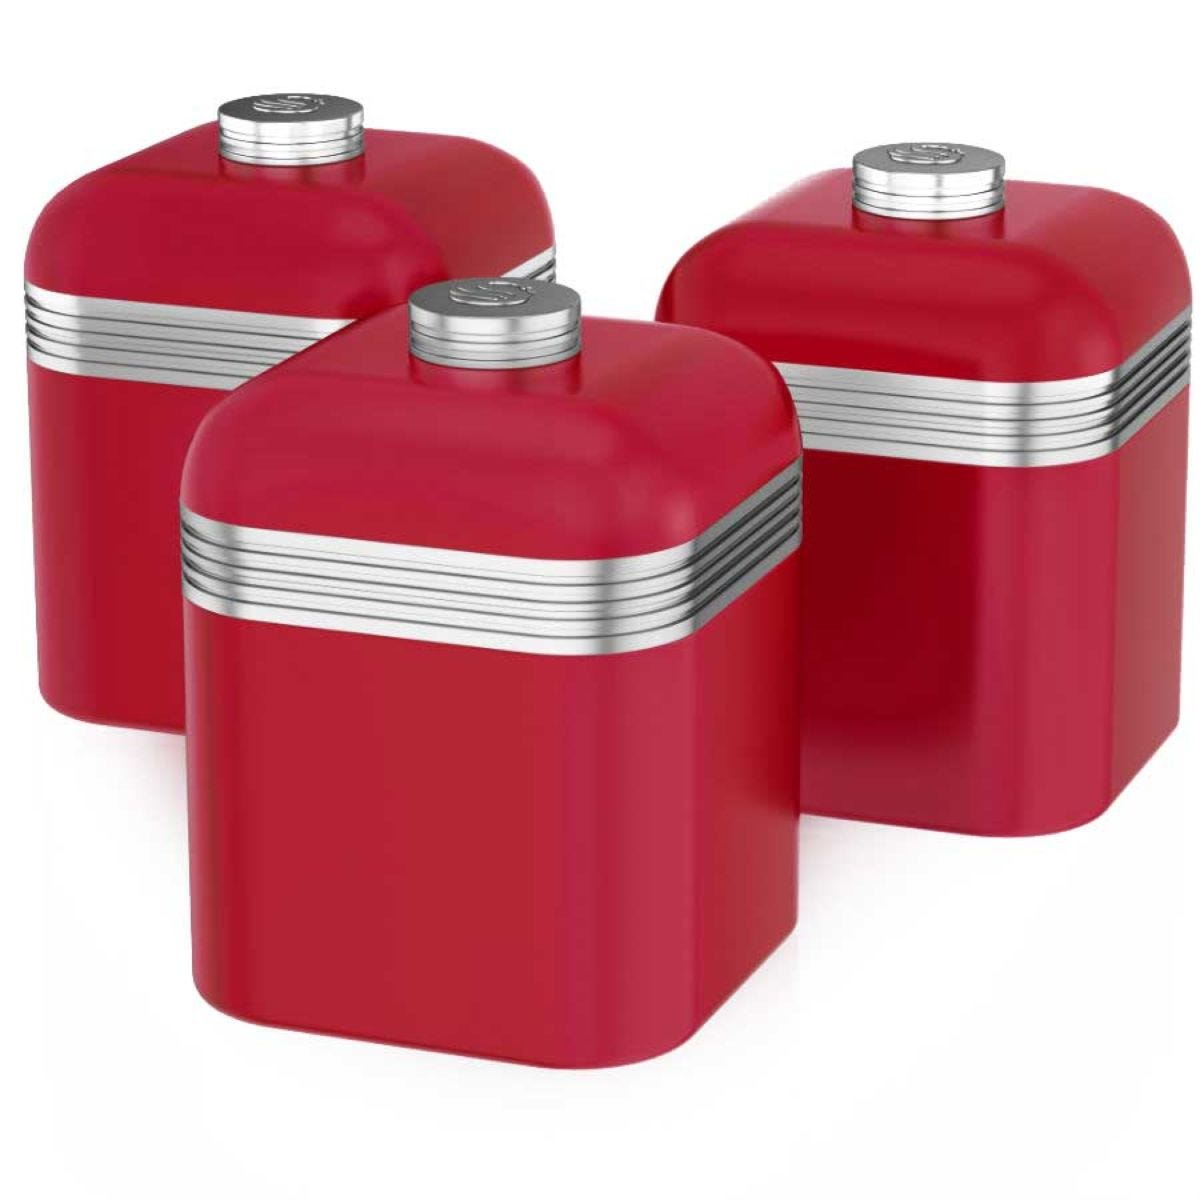 Swan Retro Set Of 3 Canisters - Red